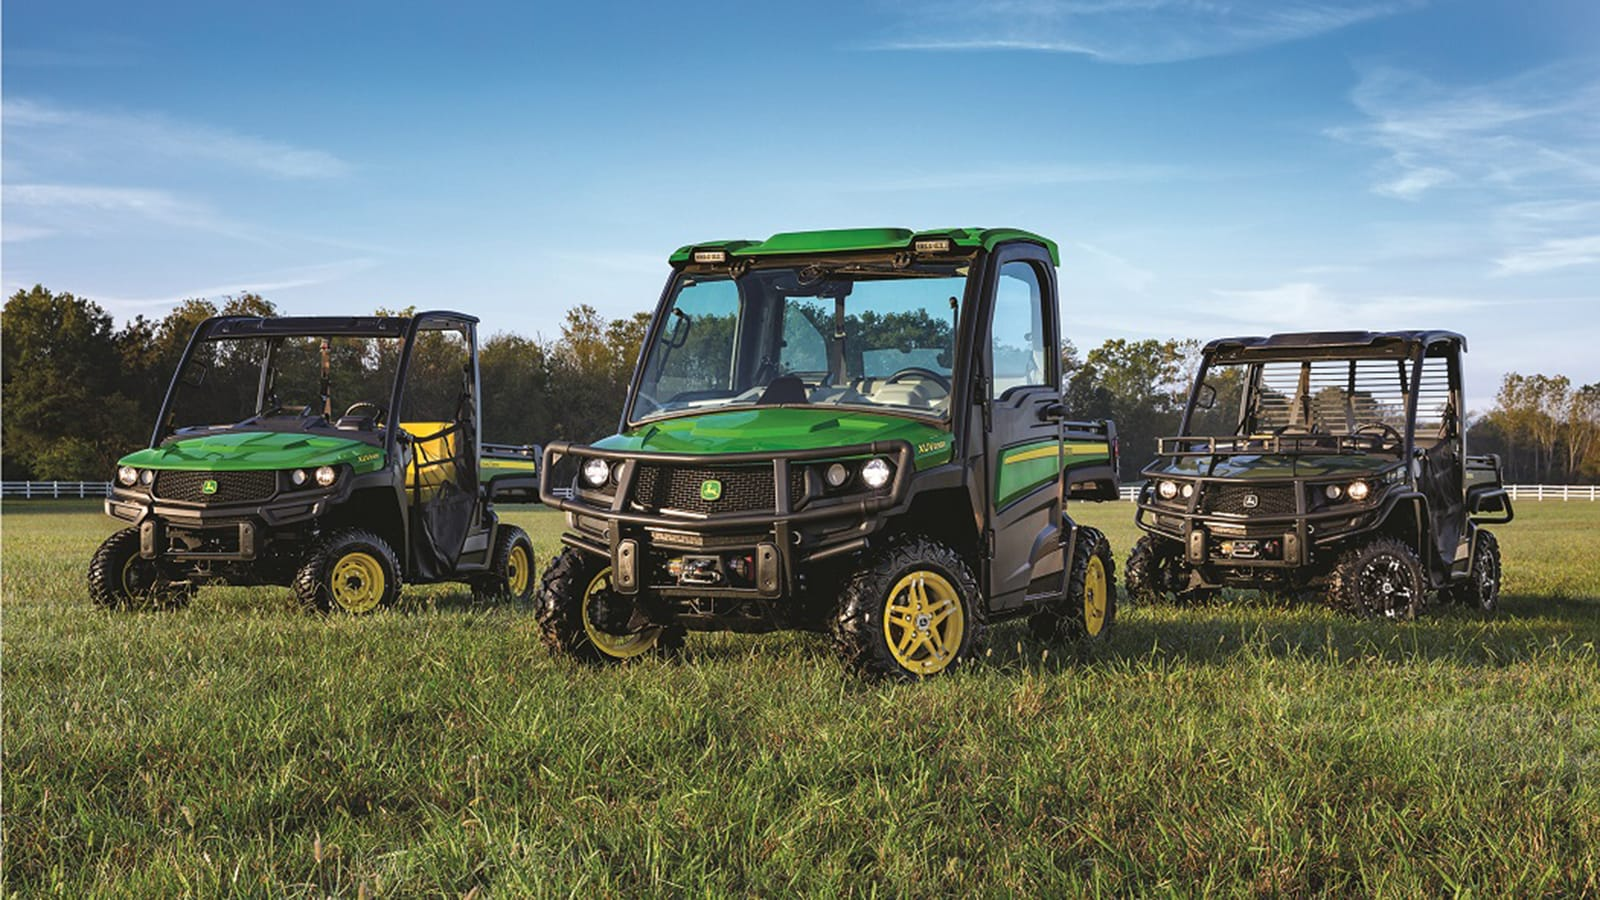 The new Gator XUV models provide versatility, durability and productivity